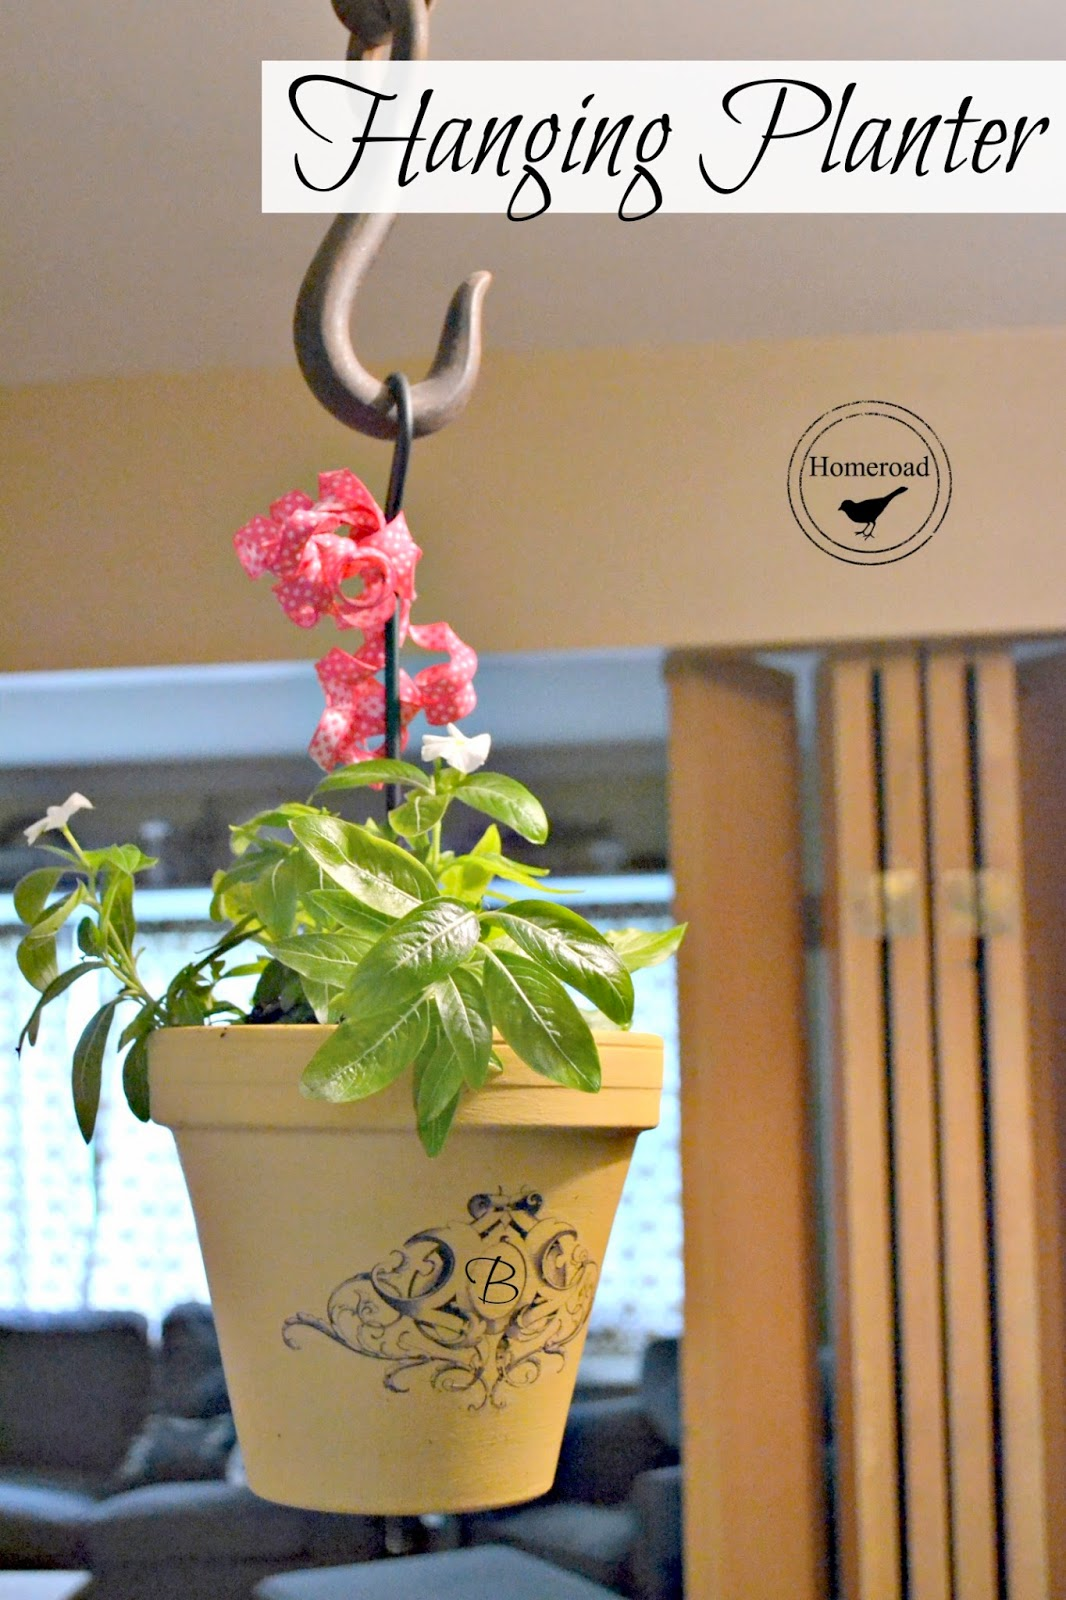 hanging-planter www.homeroad.net